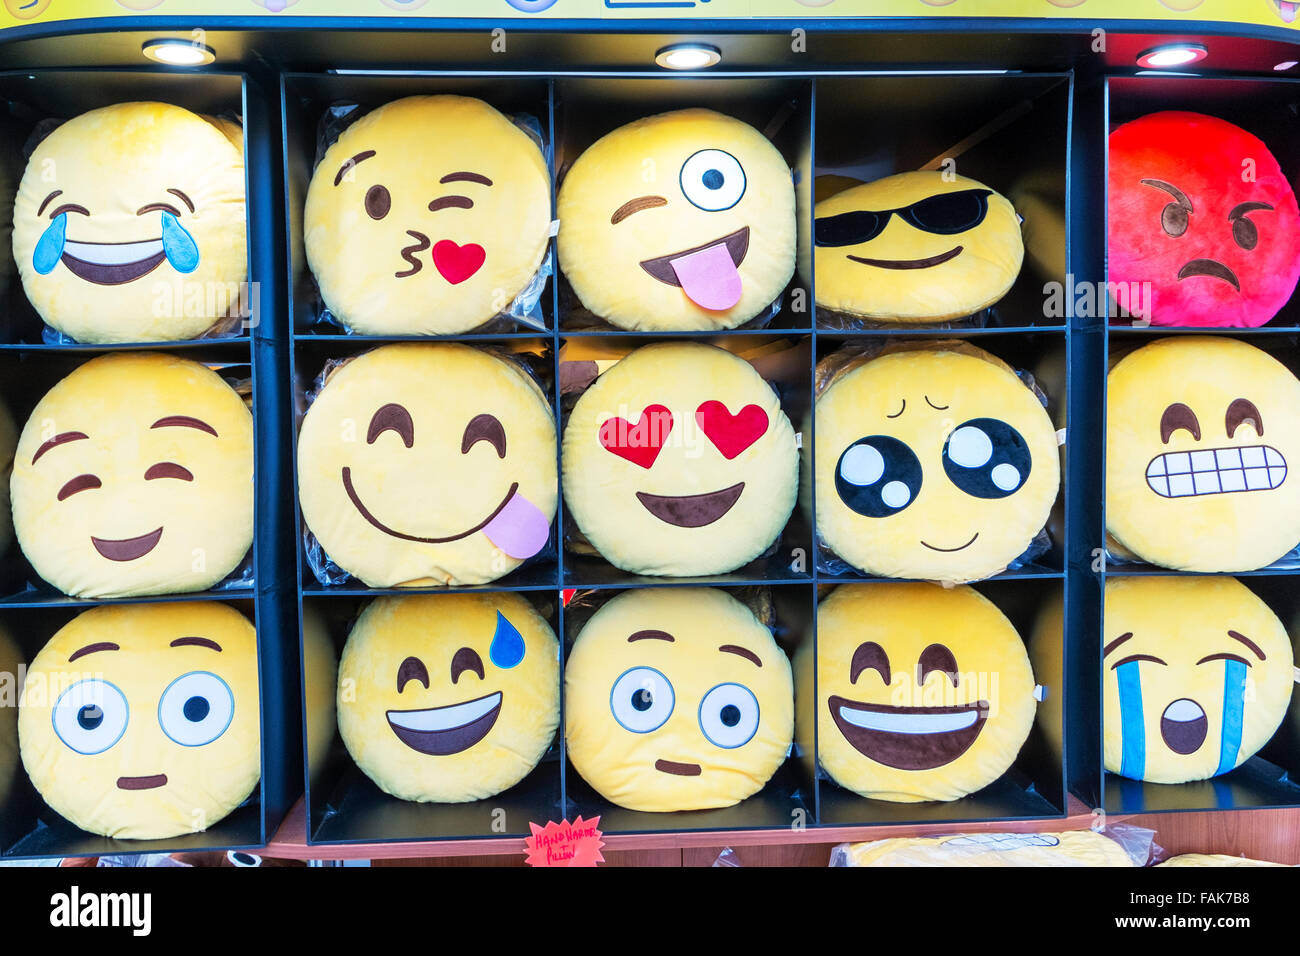 Landscape smilies symbol symbols stock photos landscape smilies emoji emojis emoticon teen language smilies happy sad cheeky angry face faces phone gestures text texting biocorpaavc Images